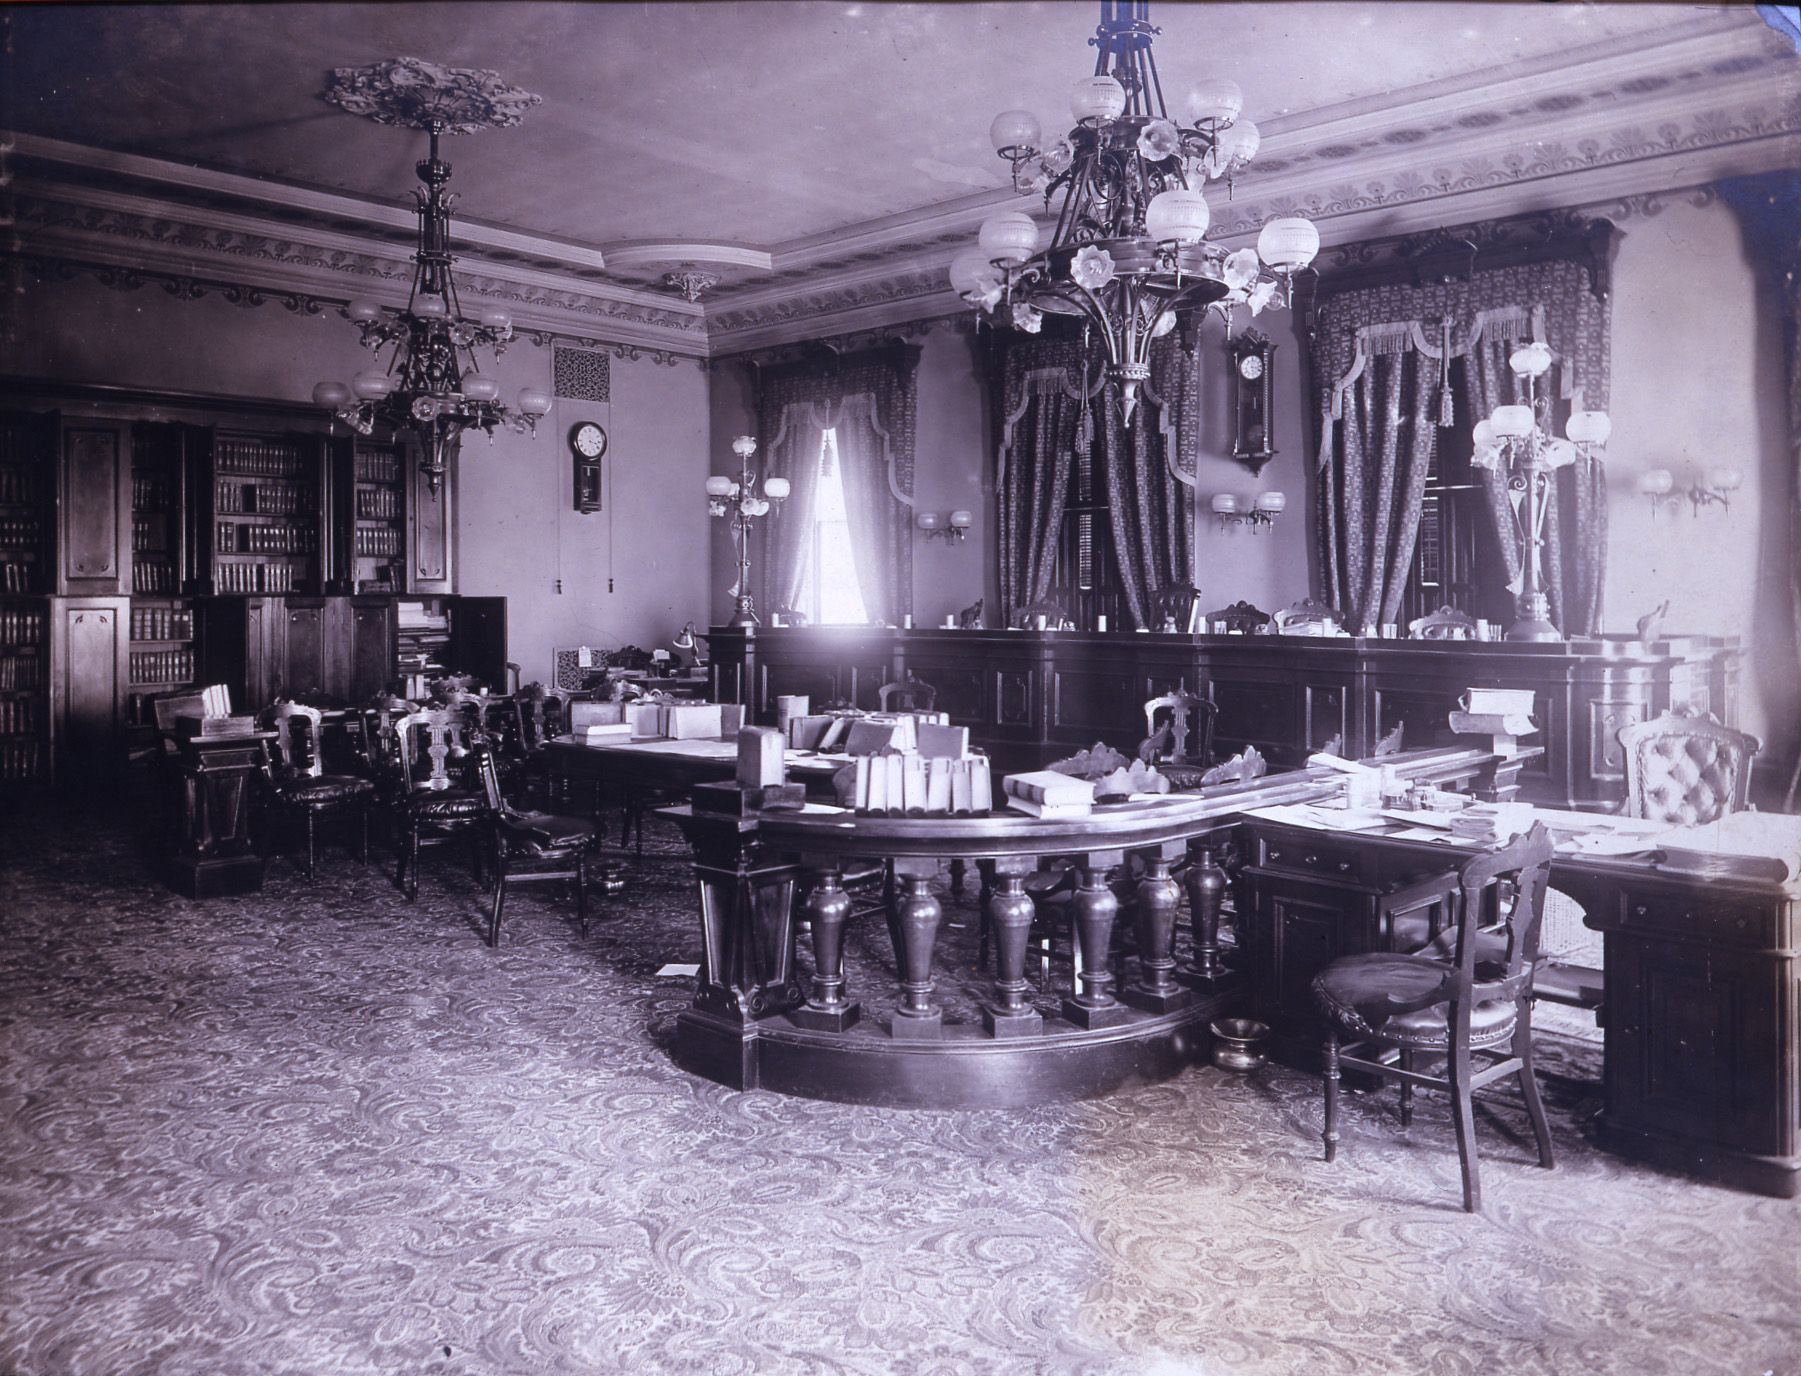 The maryland state house the state house and state circle court of appeals chamber second floor of the state house ca 1902 note the light bulbs in the old gaslight chandeliers arubaitofo Images